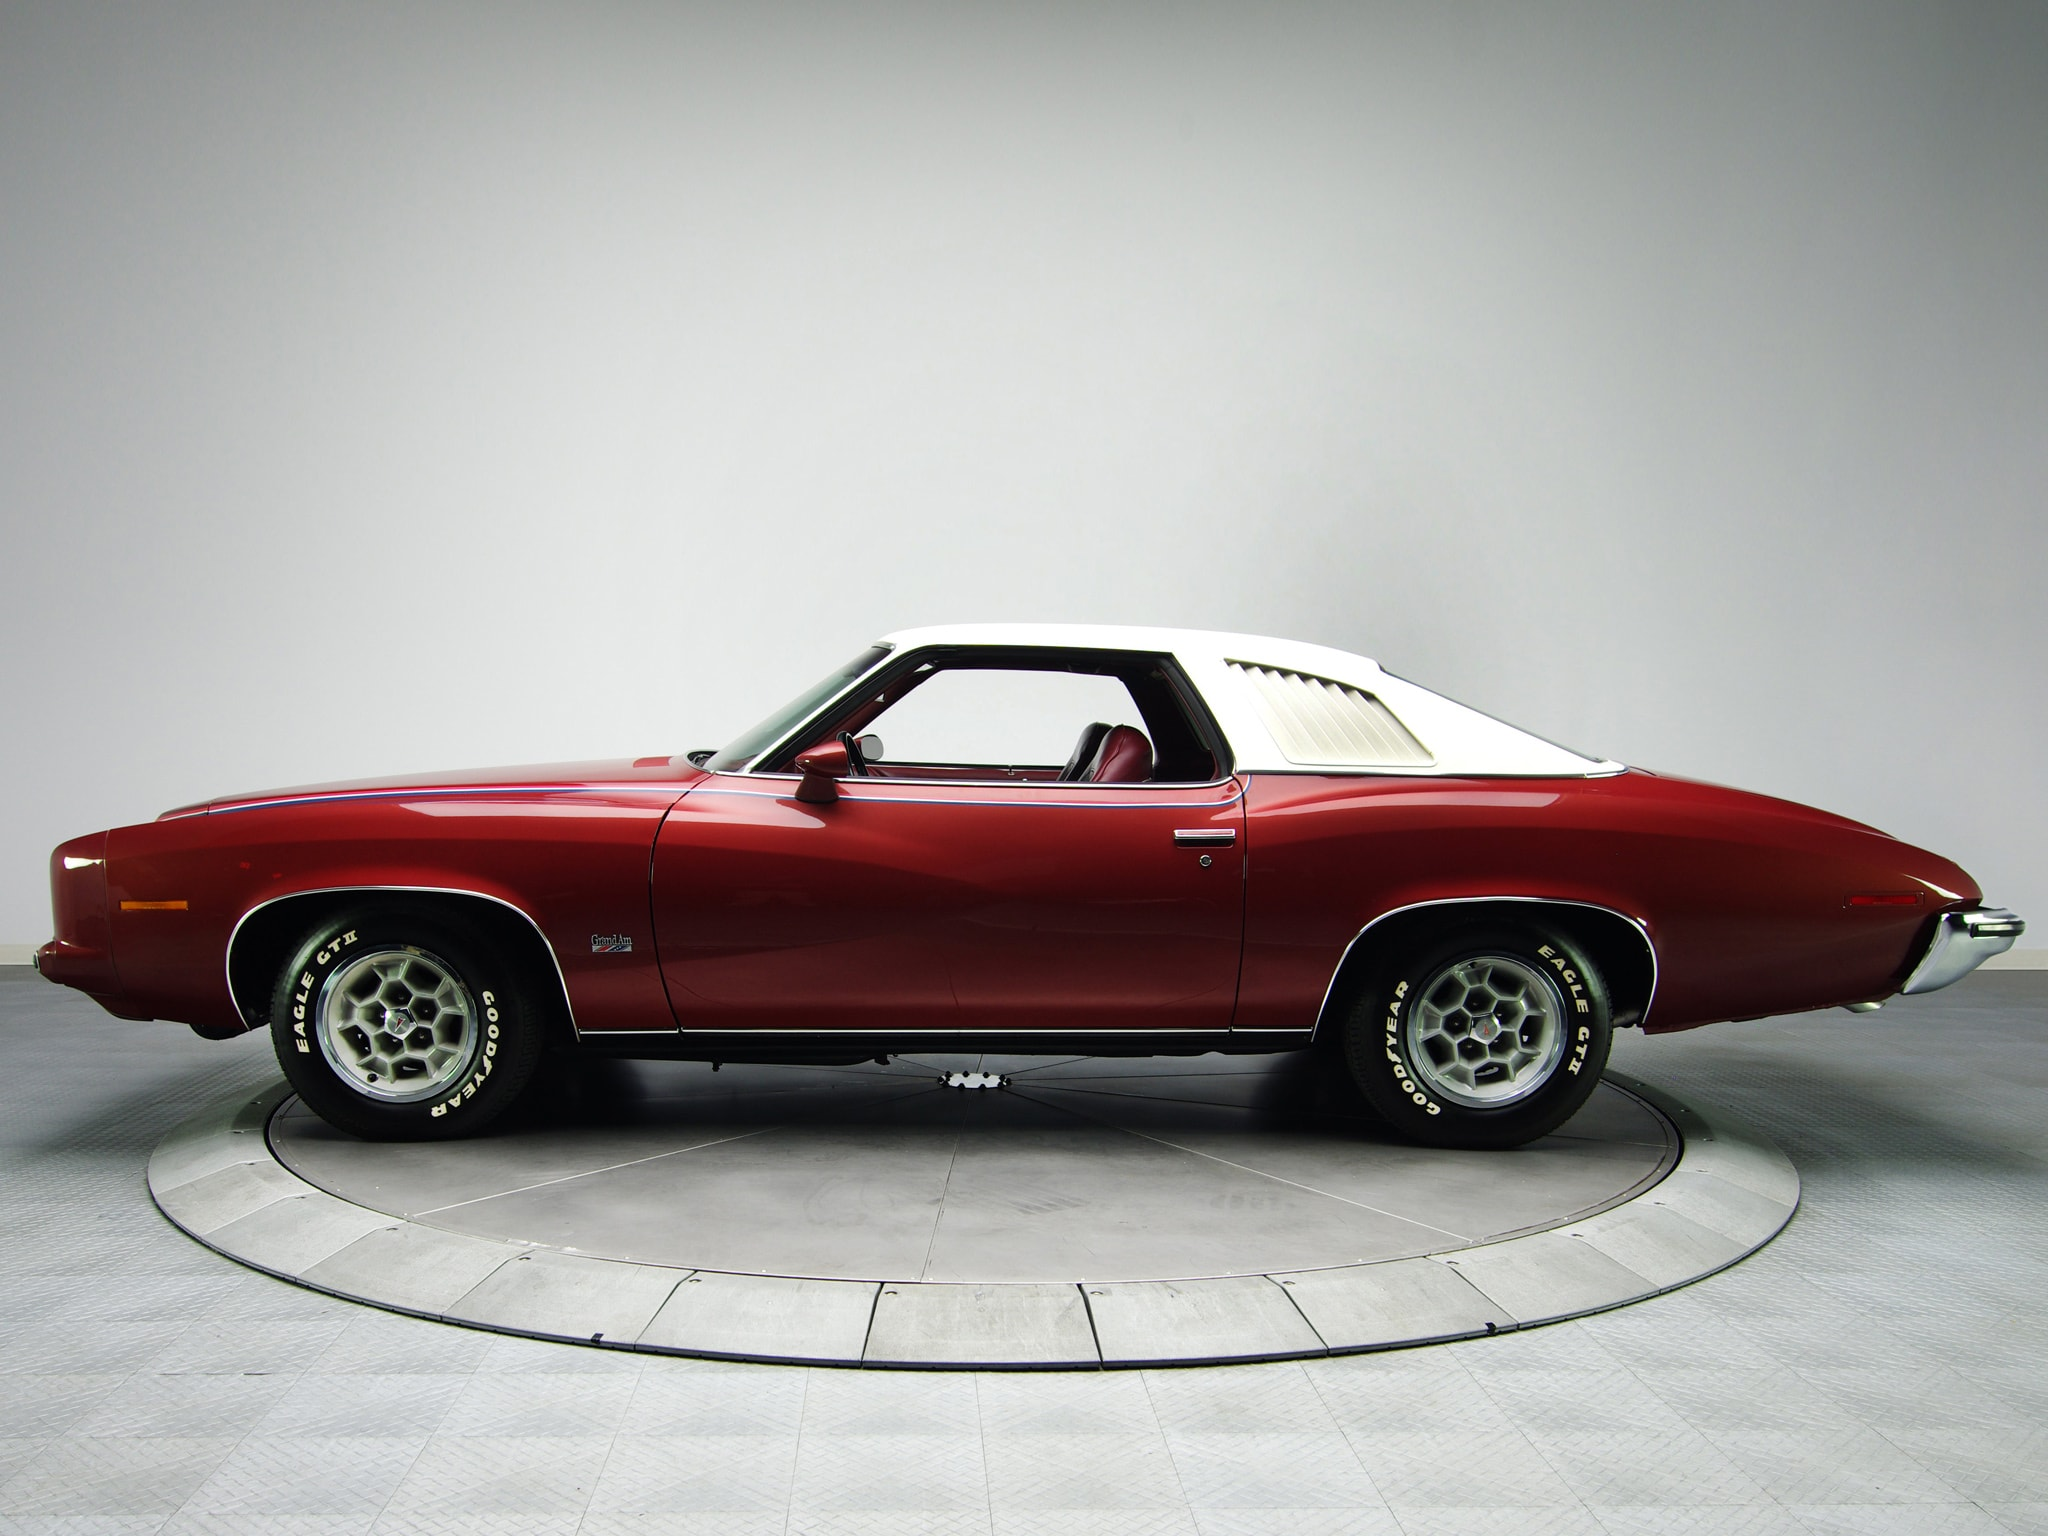 Pontiac Grand Am 1973 Widescreen for desktop